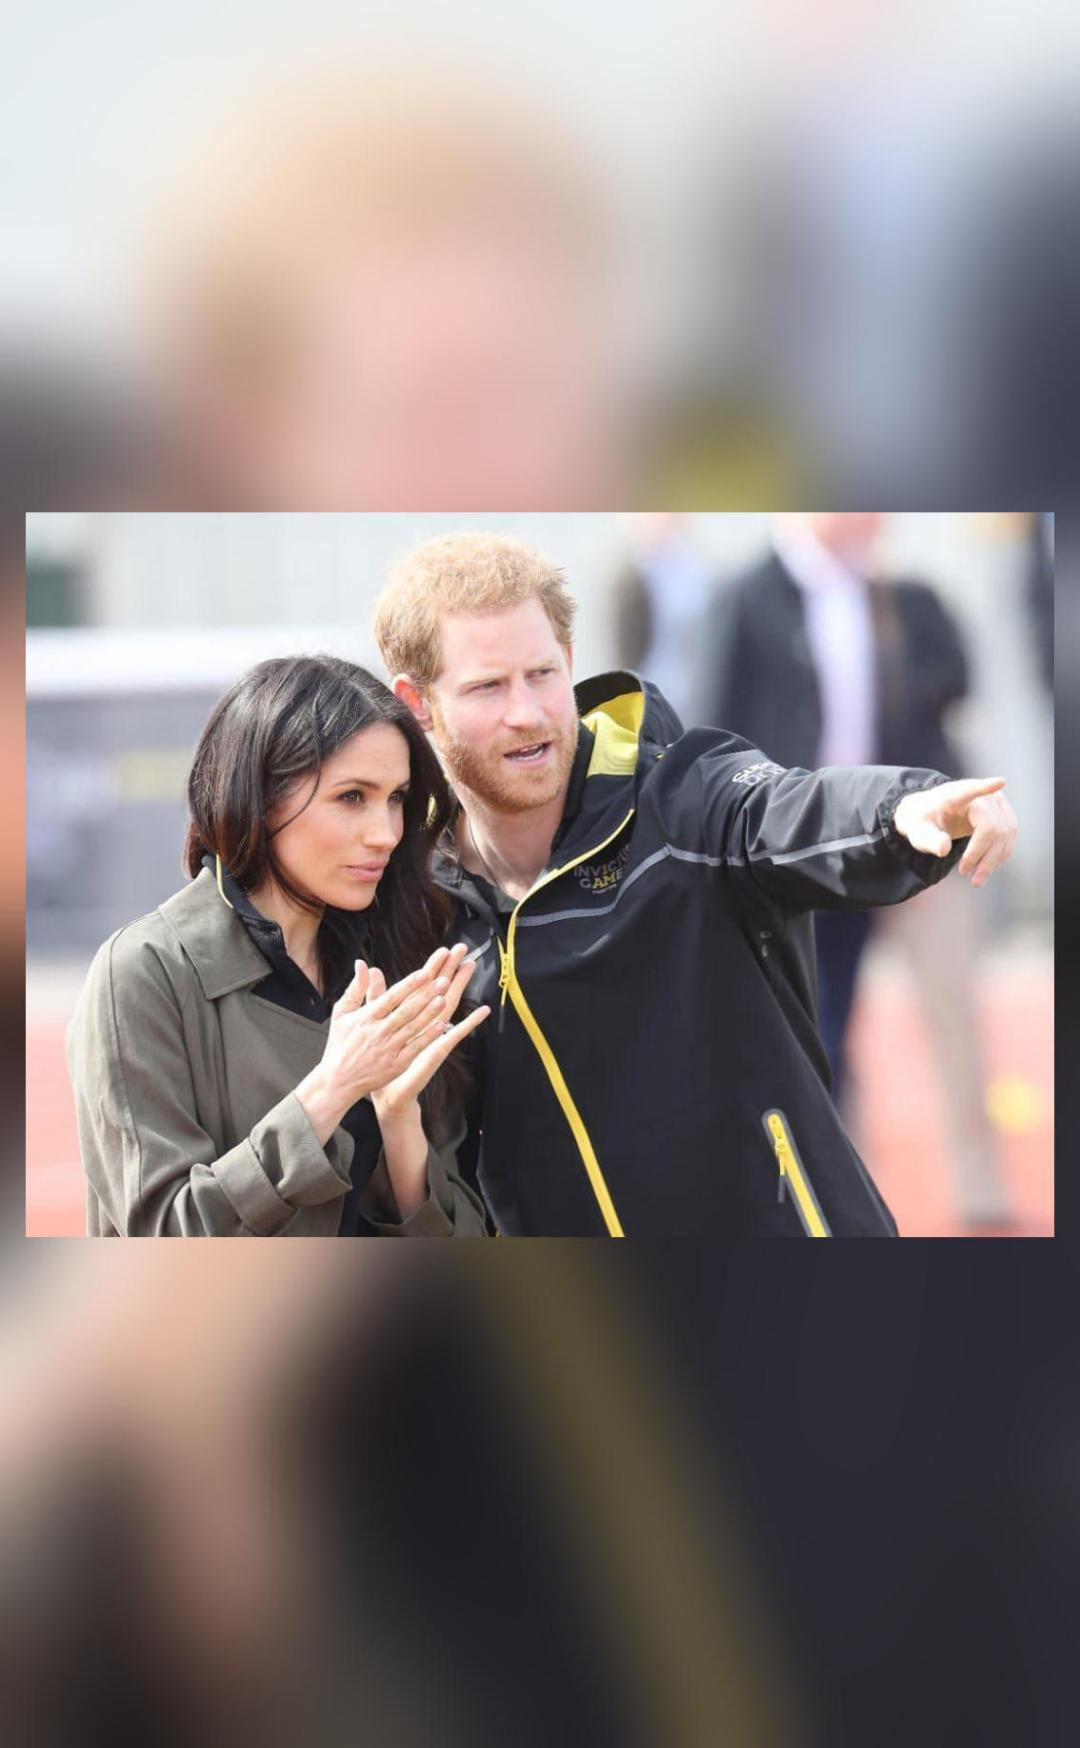 She thought it'd be unfair on me: Harry on Meghan fighting ...